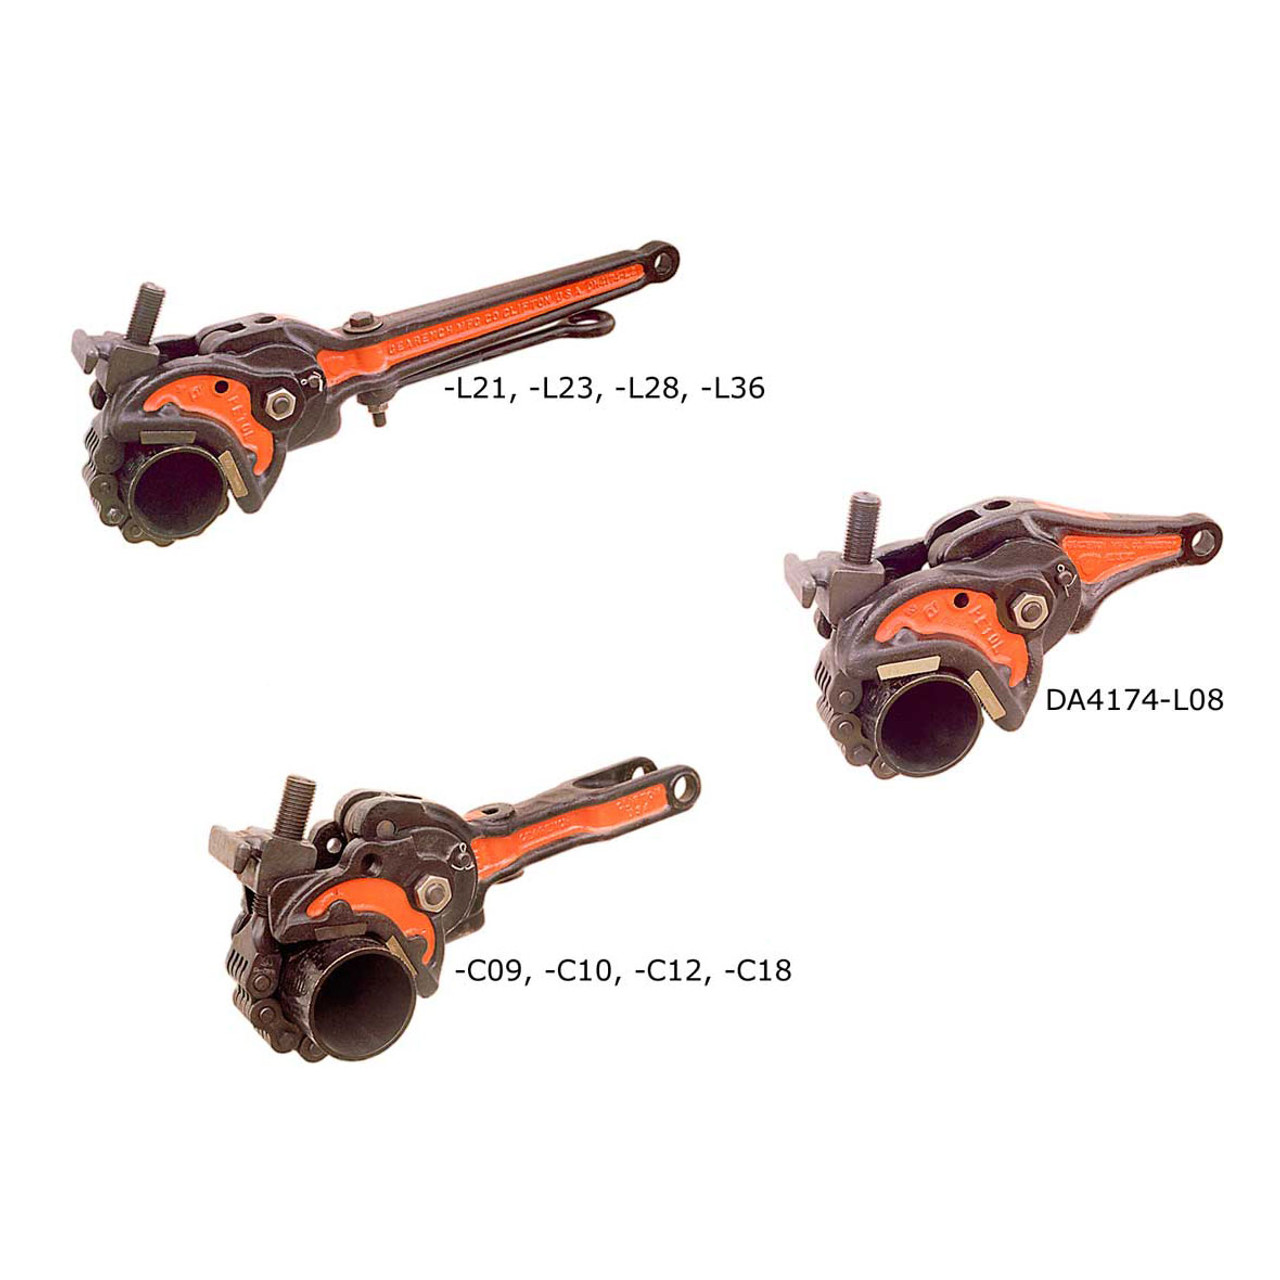 Gearench PETOL Drill Pipe Tongs (Chain not included)